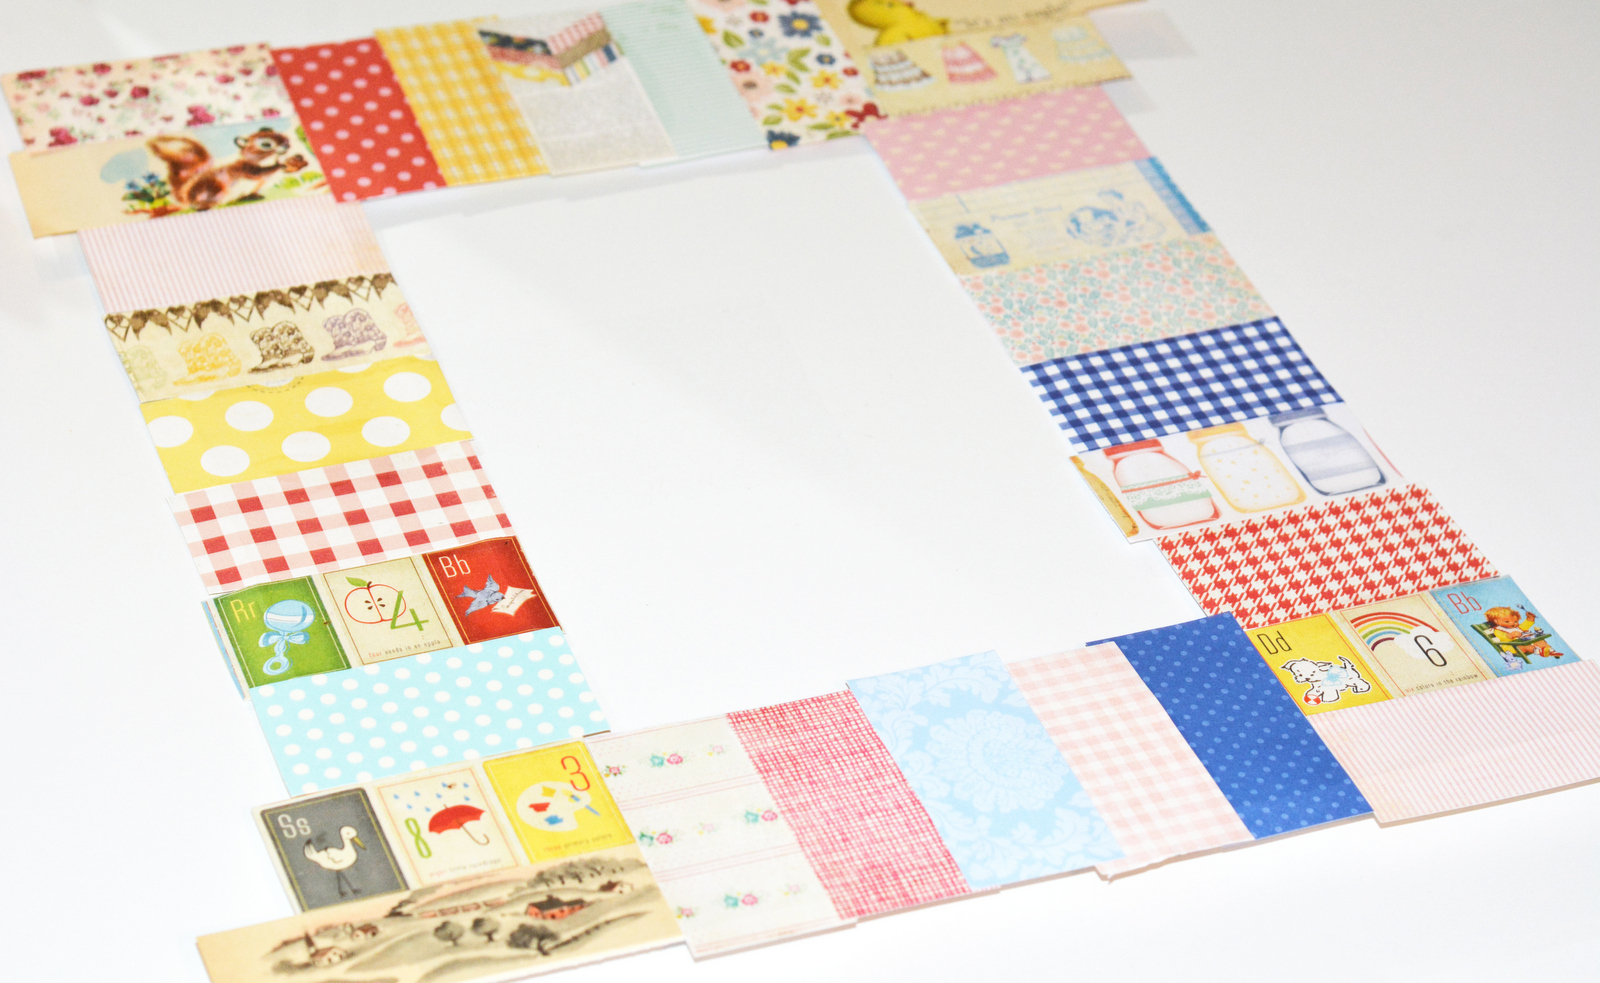 DIY picture mat made with Mod Podge and scrapbook paper